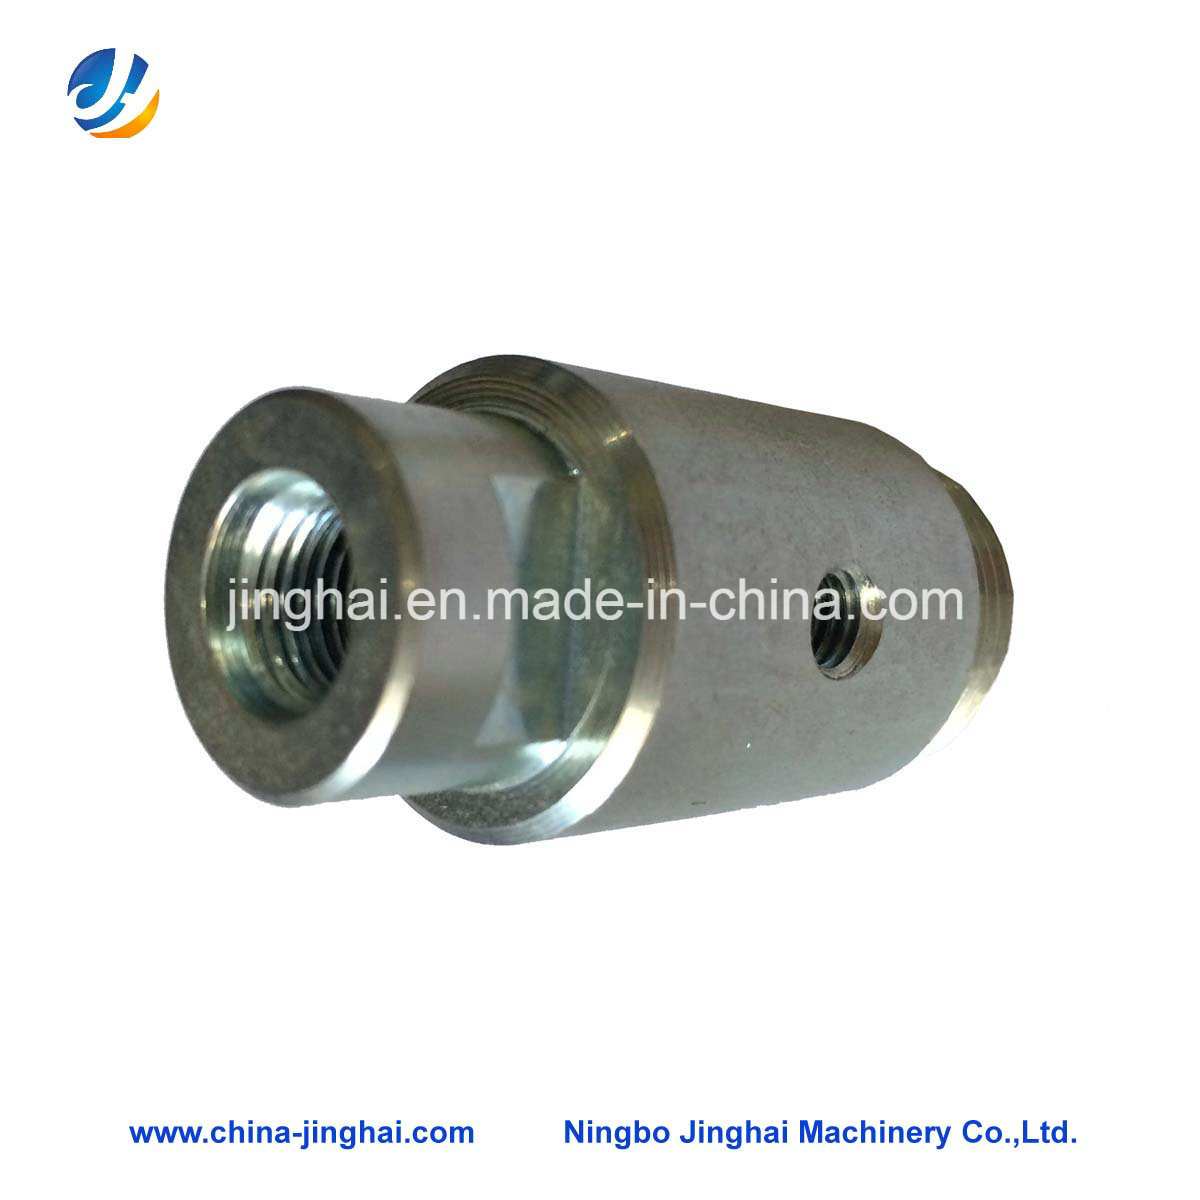 OEM Precision Stainless Steel Metal Machining Hardware Components for Mould/Lock